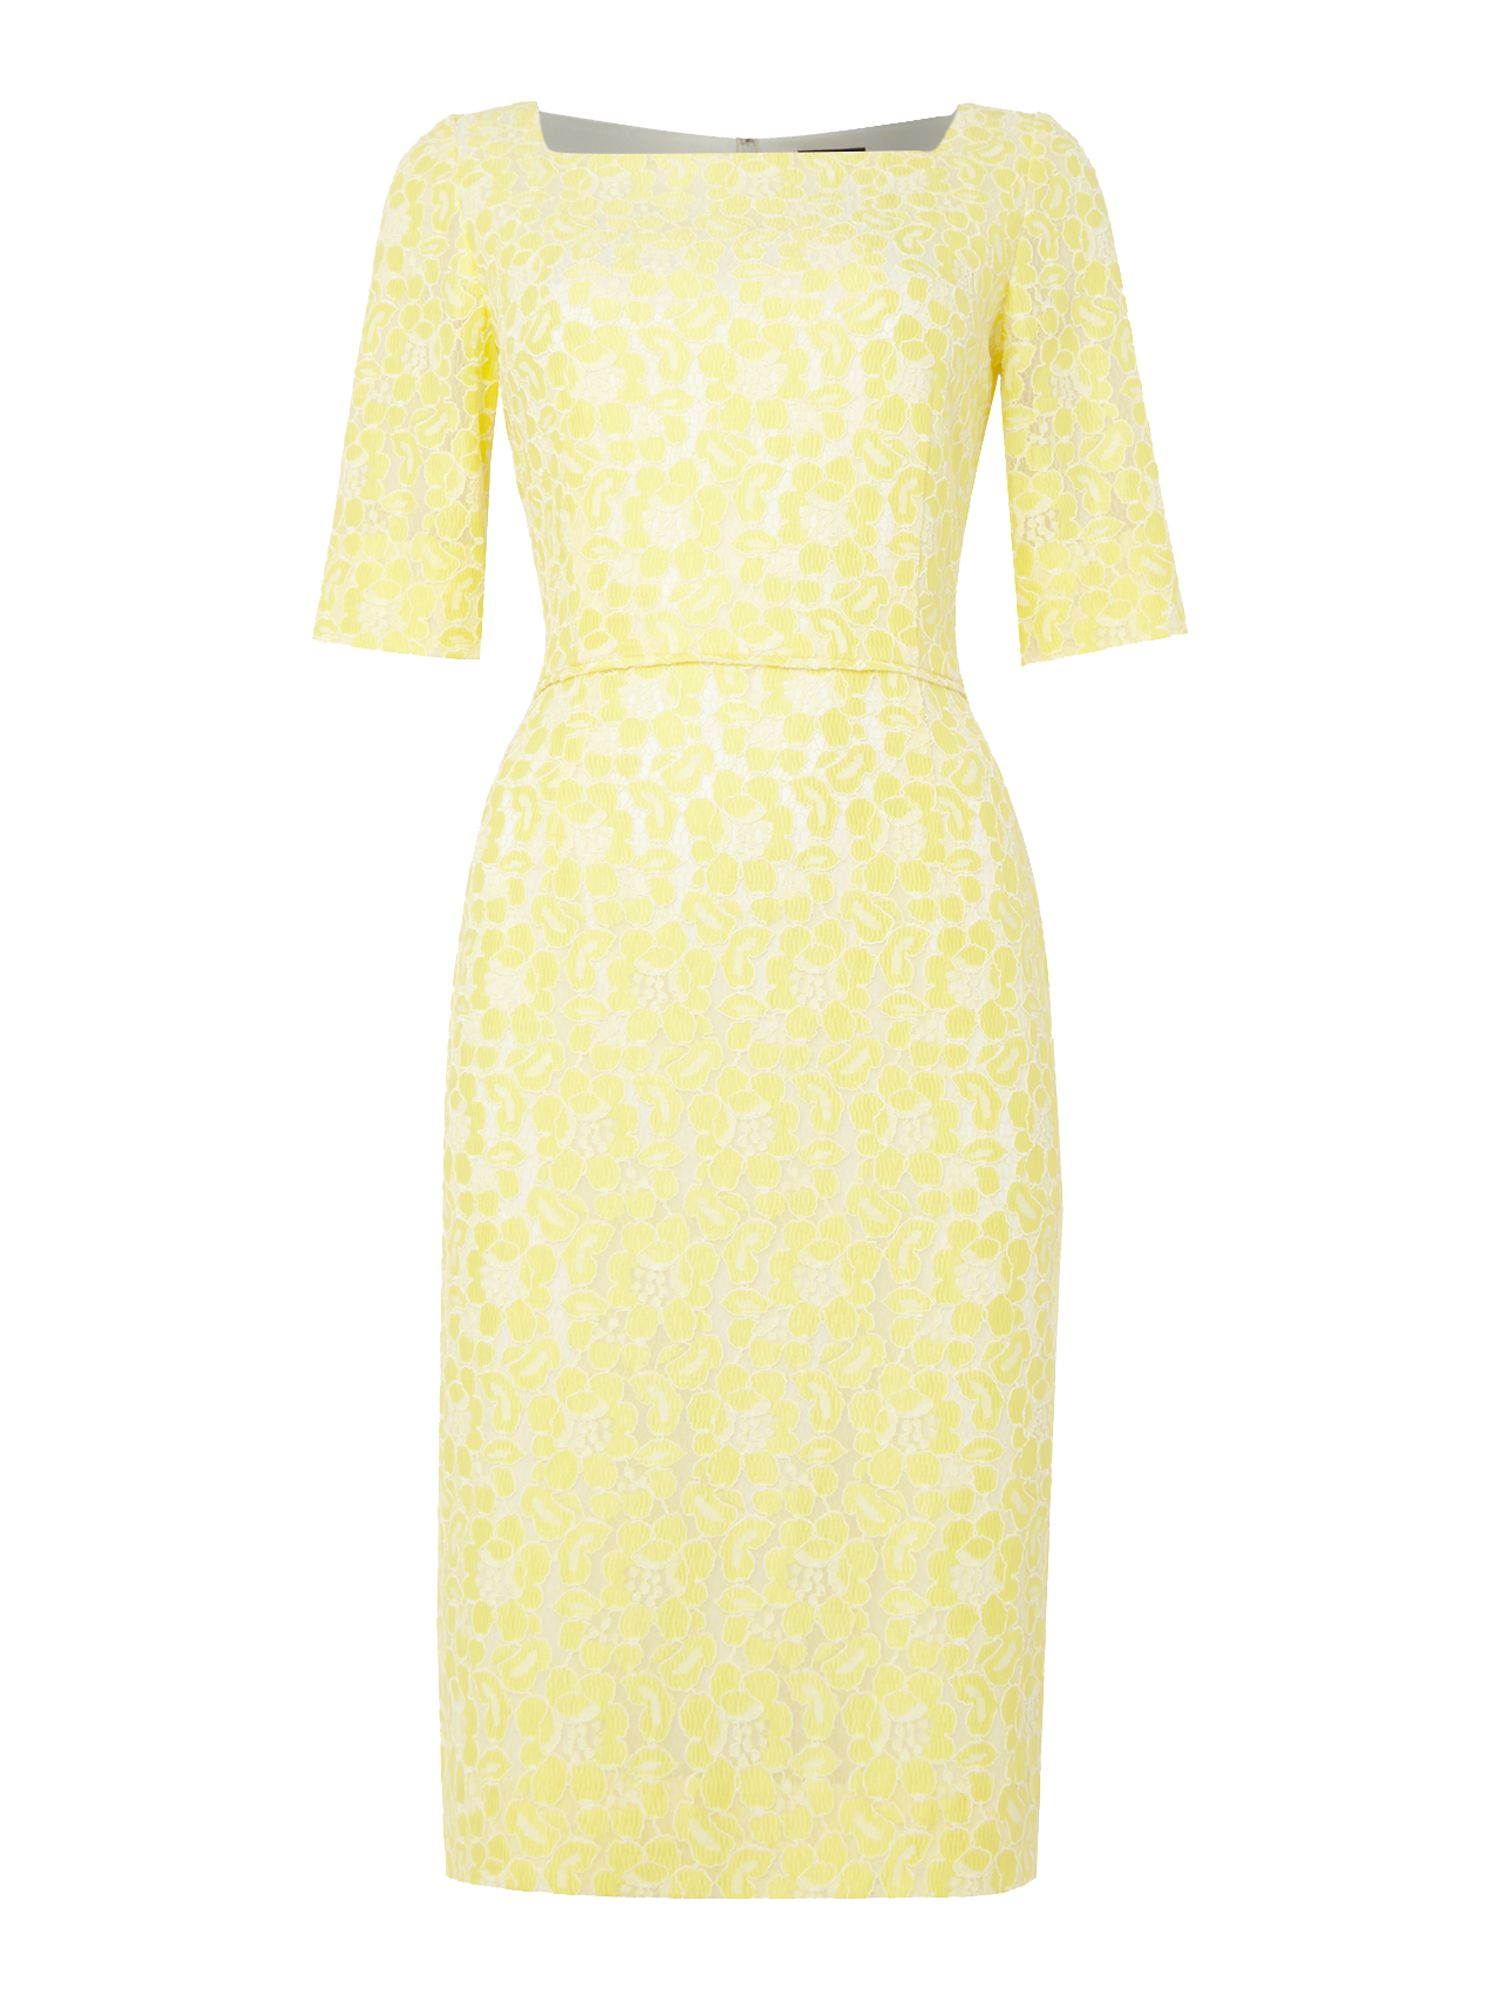 Tahari ASL Feminine Yellow and Ivory Lace Fitted Dress, Yellow